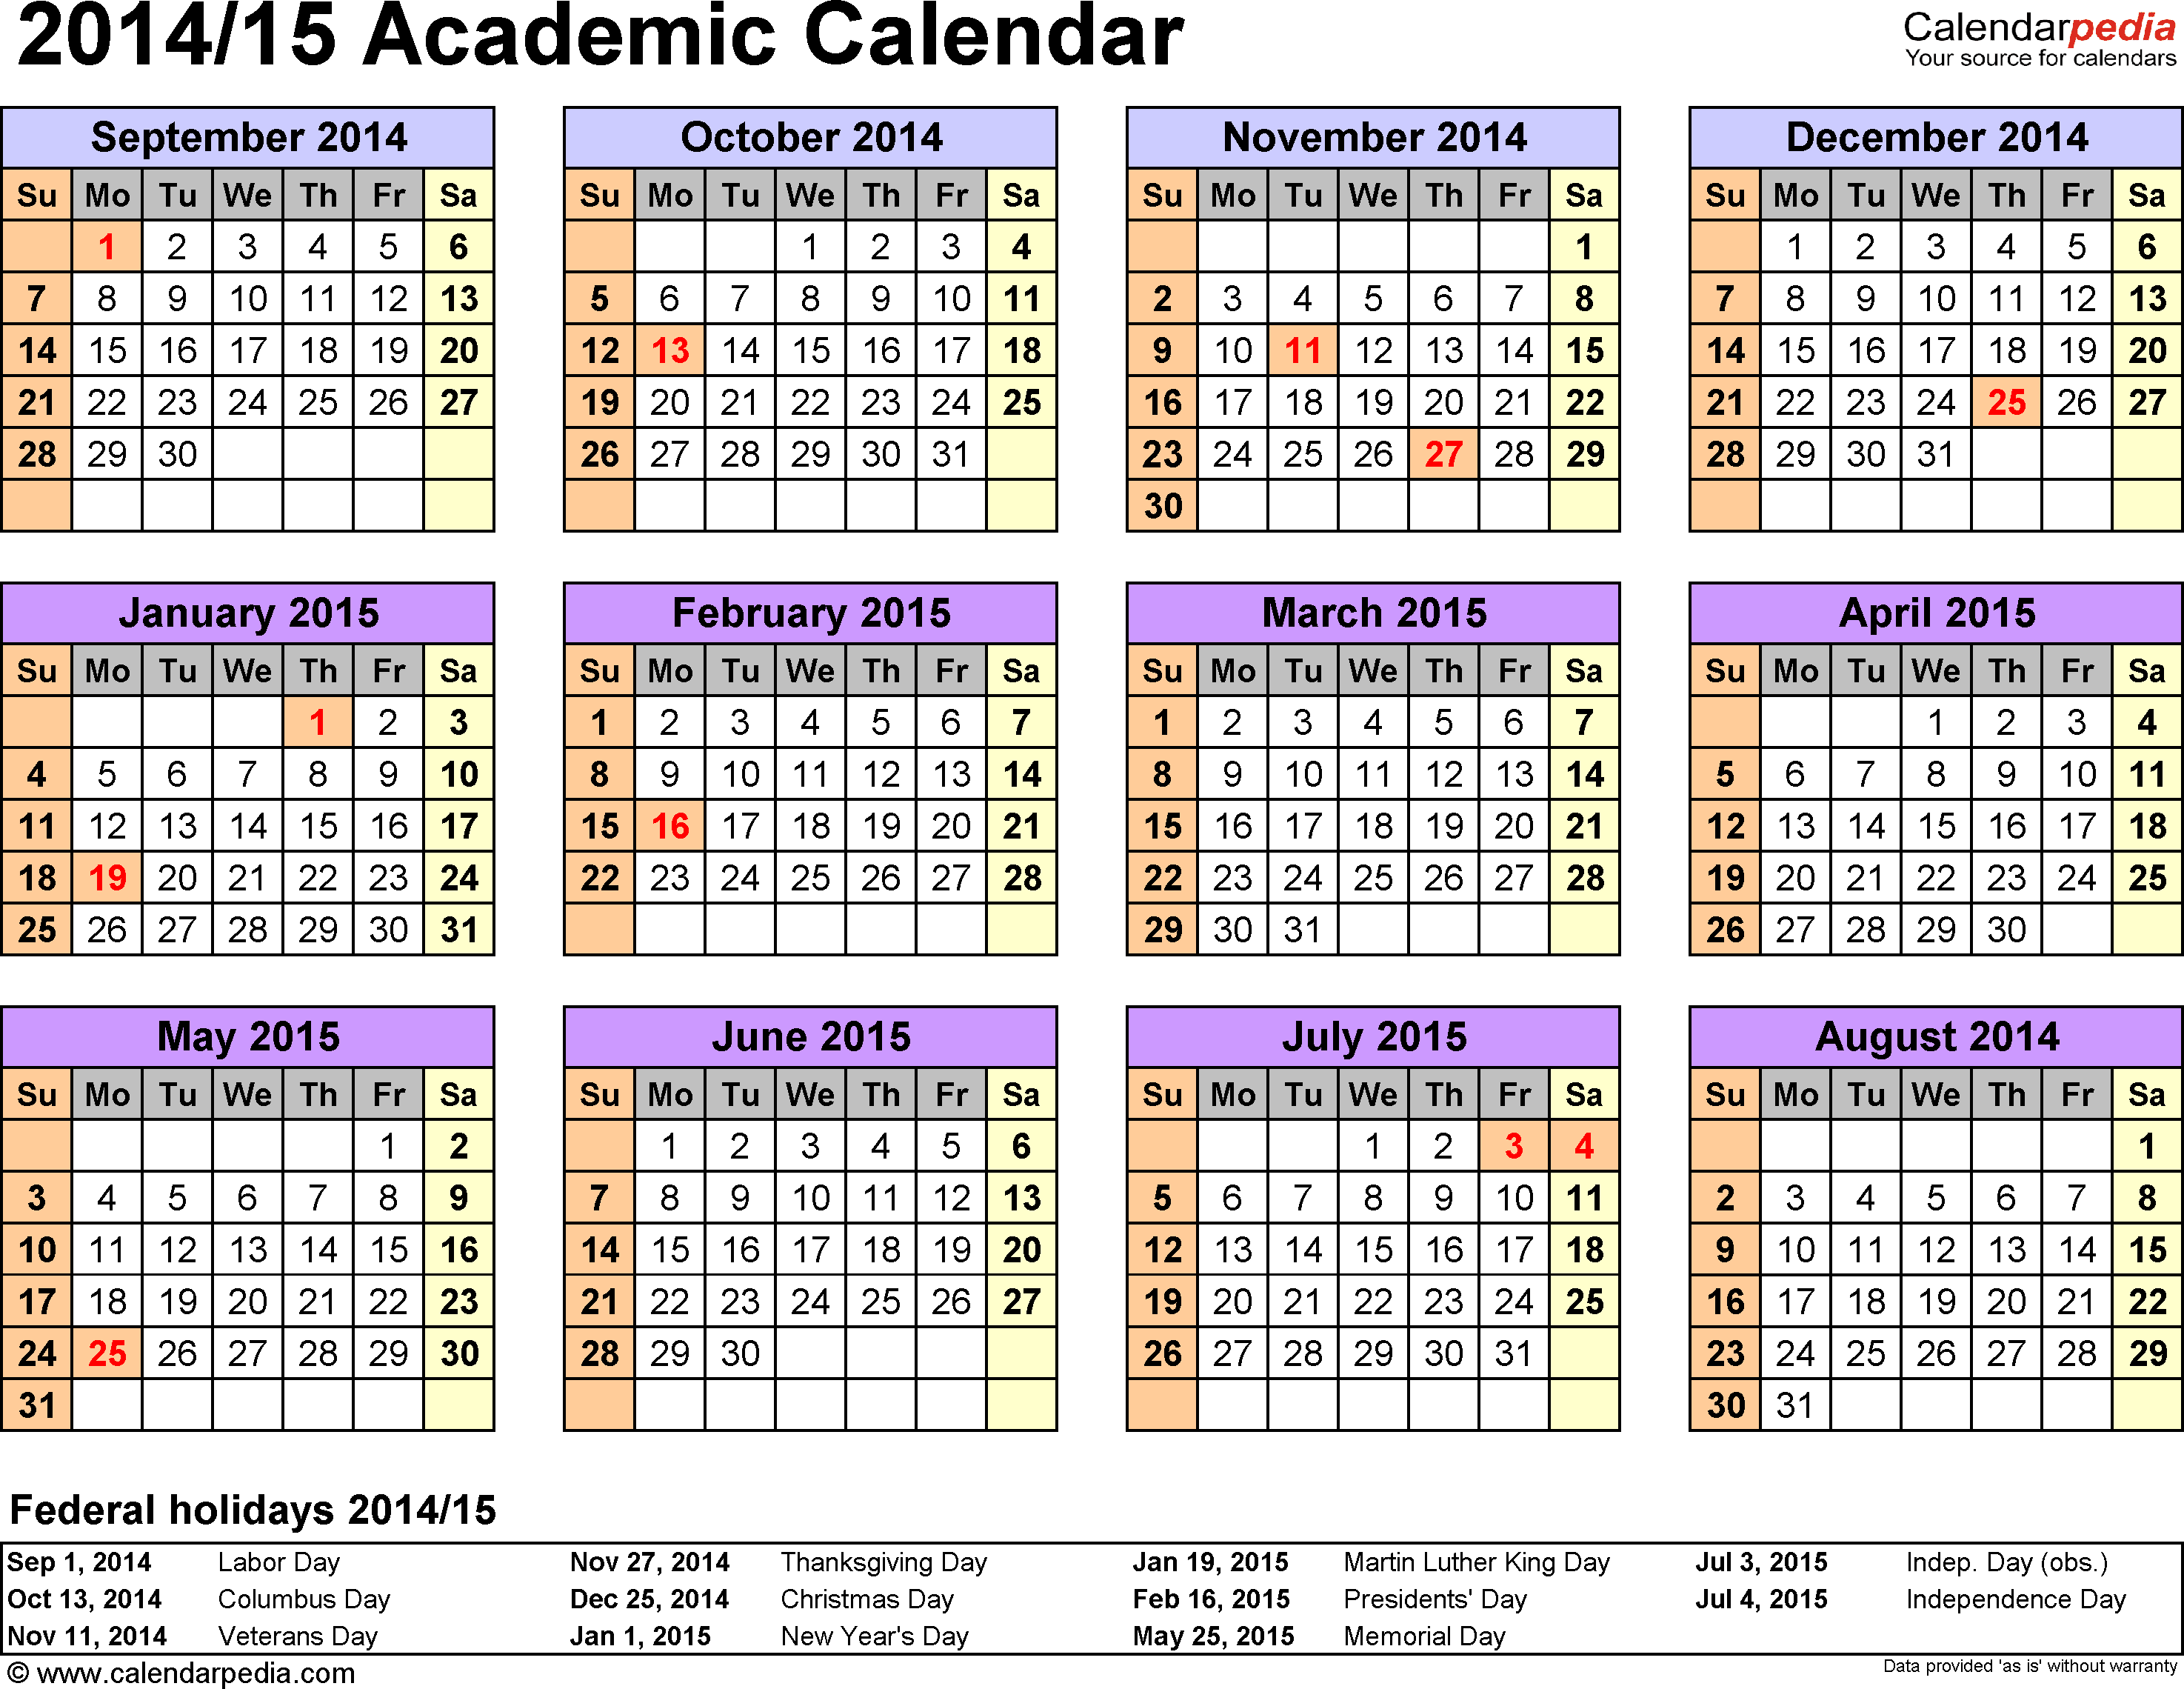 Download Template 3: Academic calendar 2014/15 for Microsoft Word (.docx file), landscape, 1 page, year at a glance